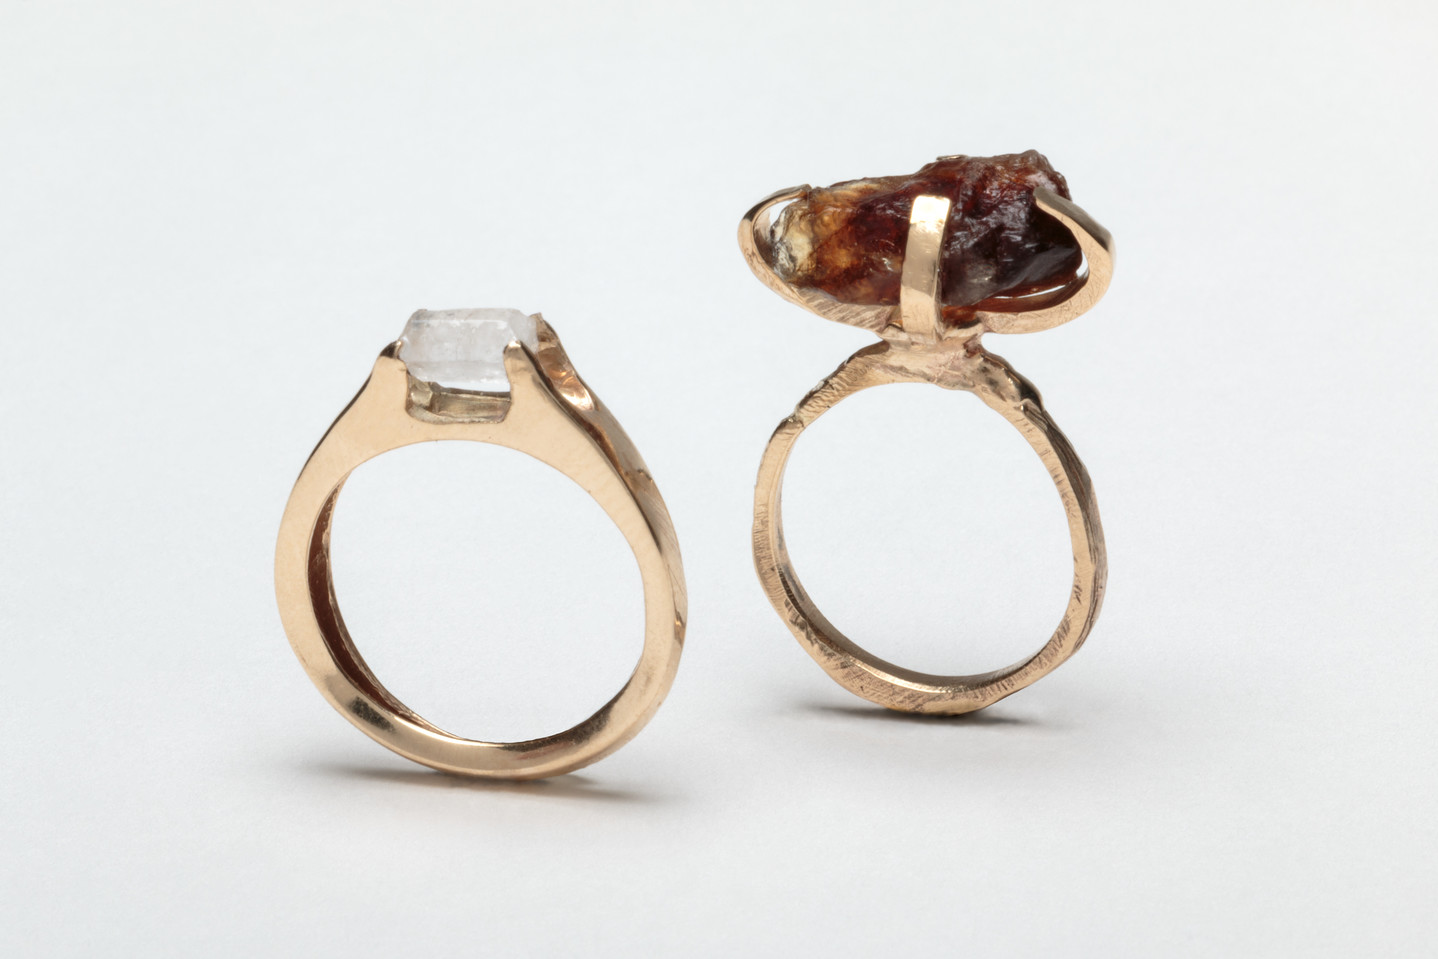 Two rings with gold bands and small gem-like forms on top. The gems are crafted from raw sugar. The left ring is perfectly circular with a small, white sugar crystal on top. The right ring is a slightly rougher circle, with a larger brown sugar crystal on top.